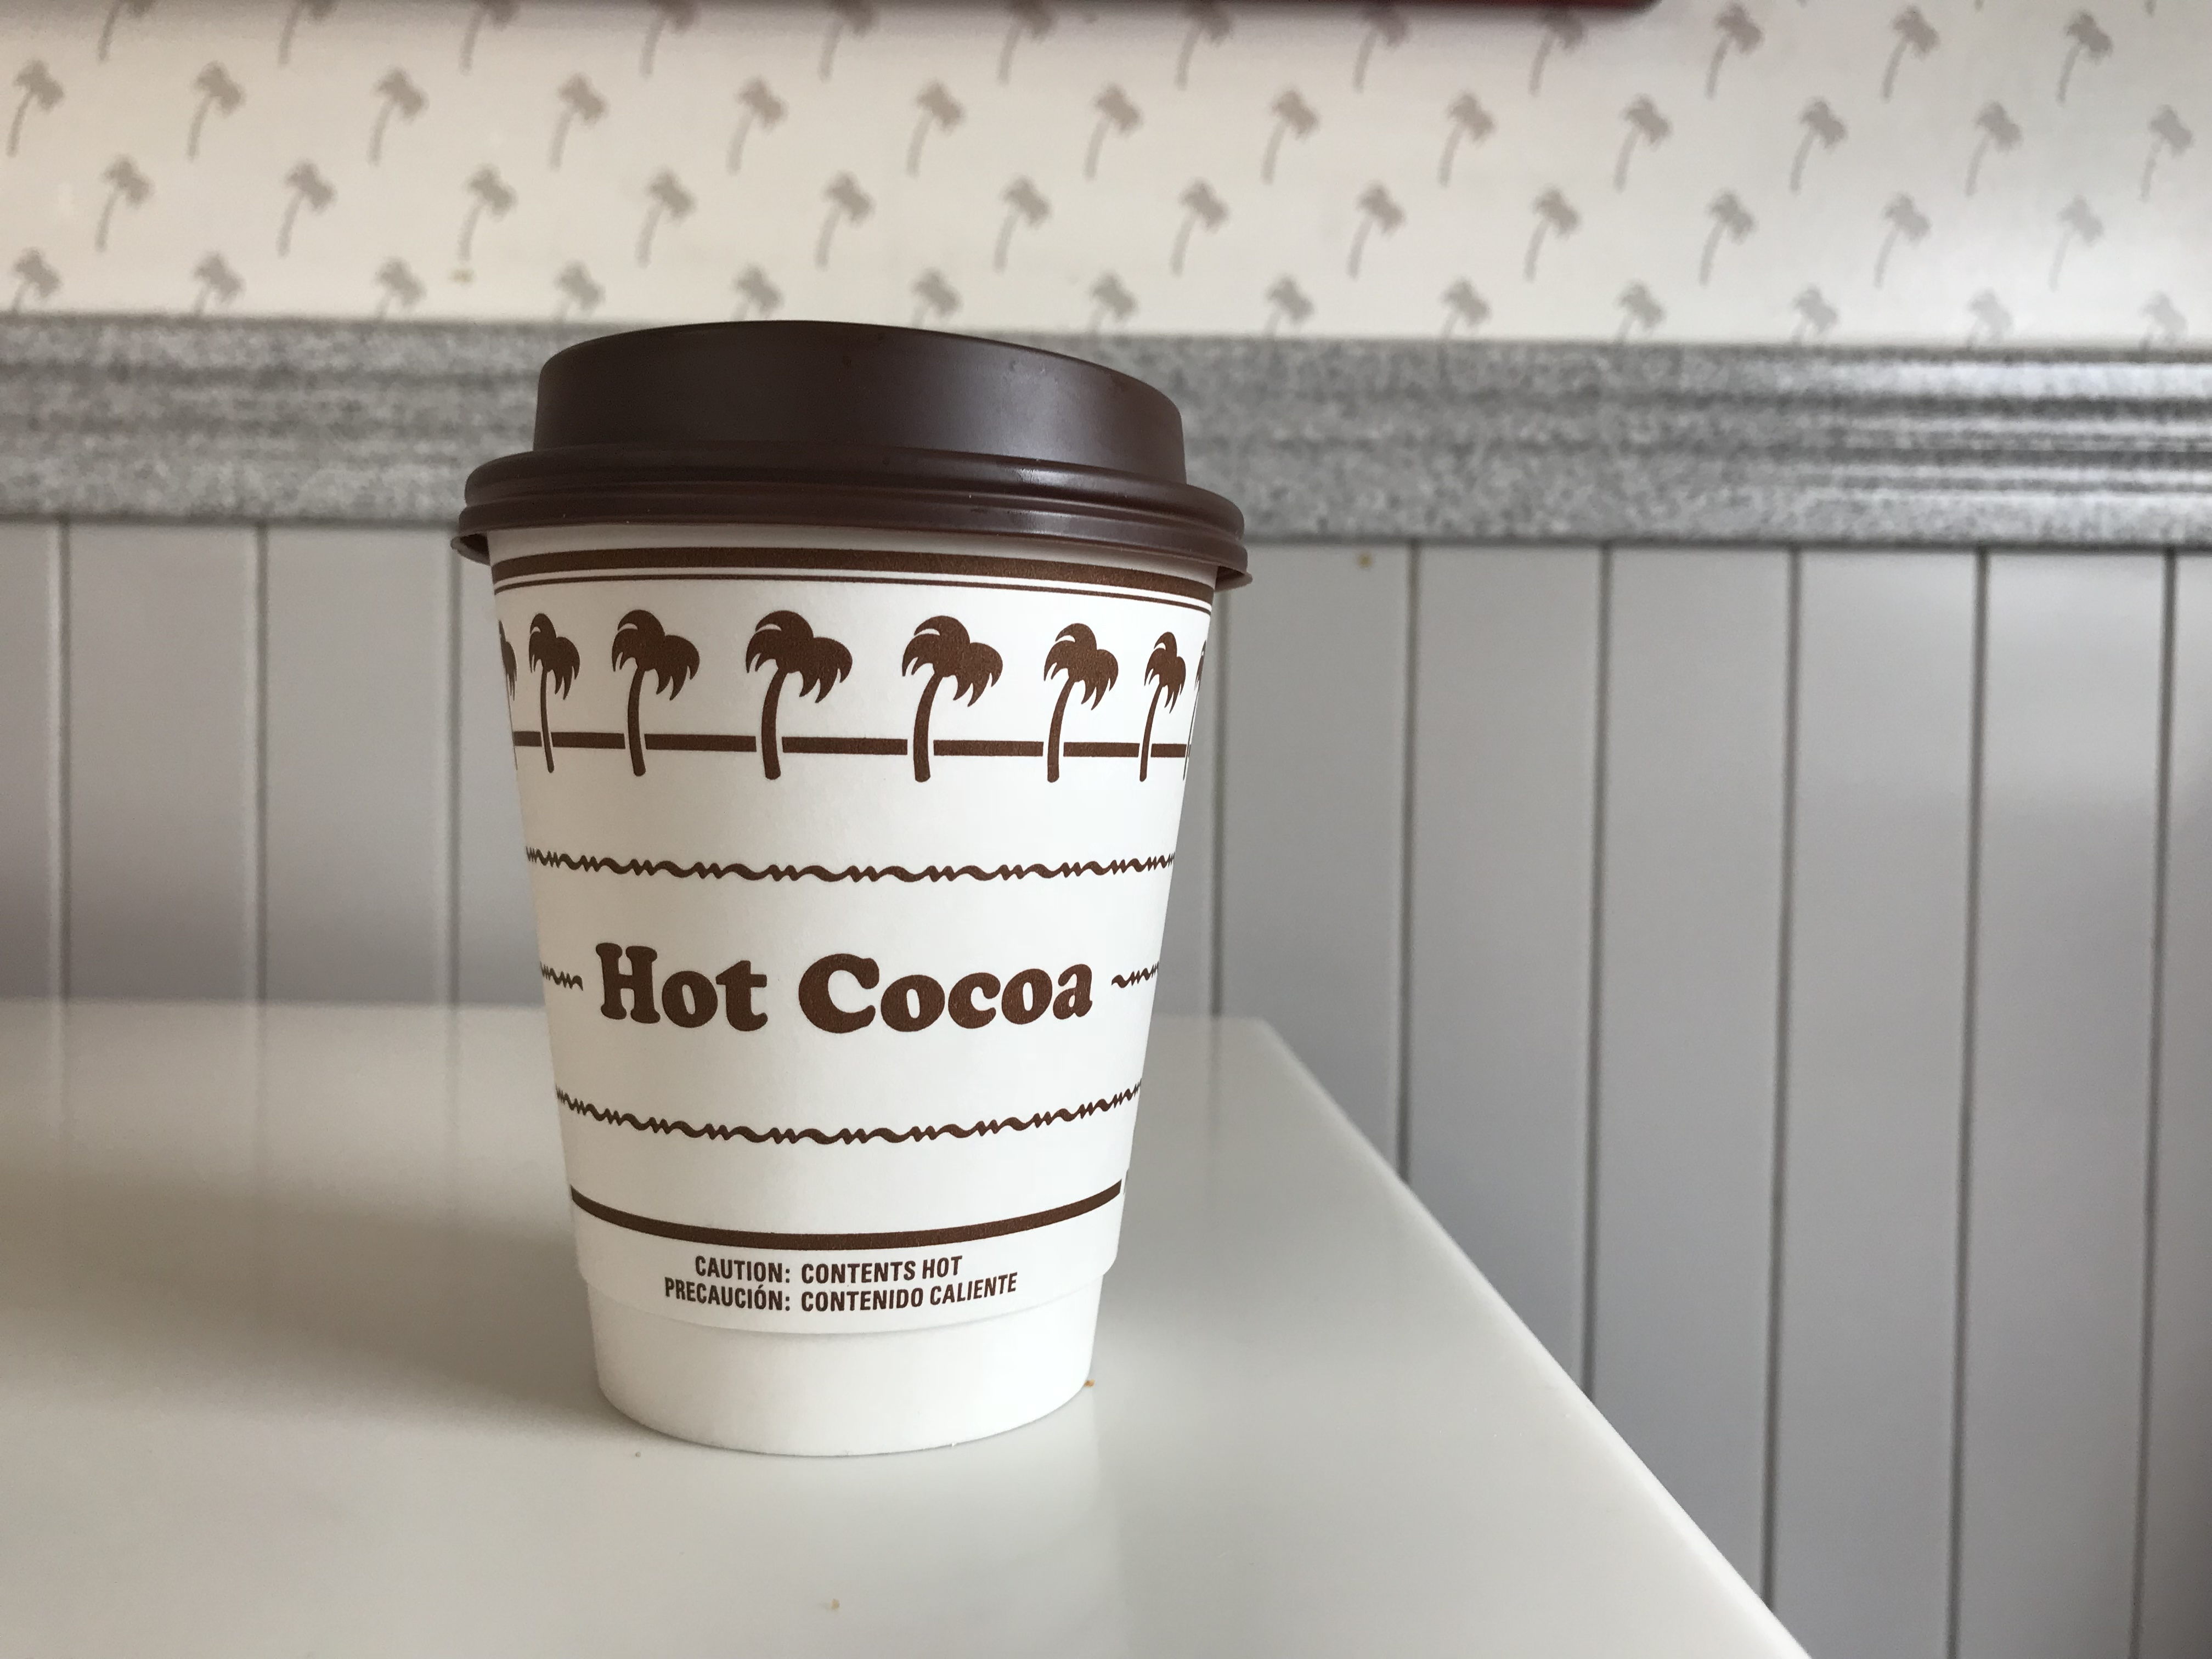 Menus Eater Chicken Wing Diagram Images Pictures Becuo In N Out Has Added Hot Cocoa To Its Menu